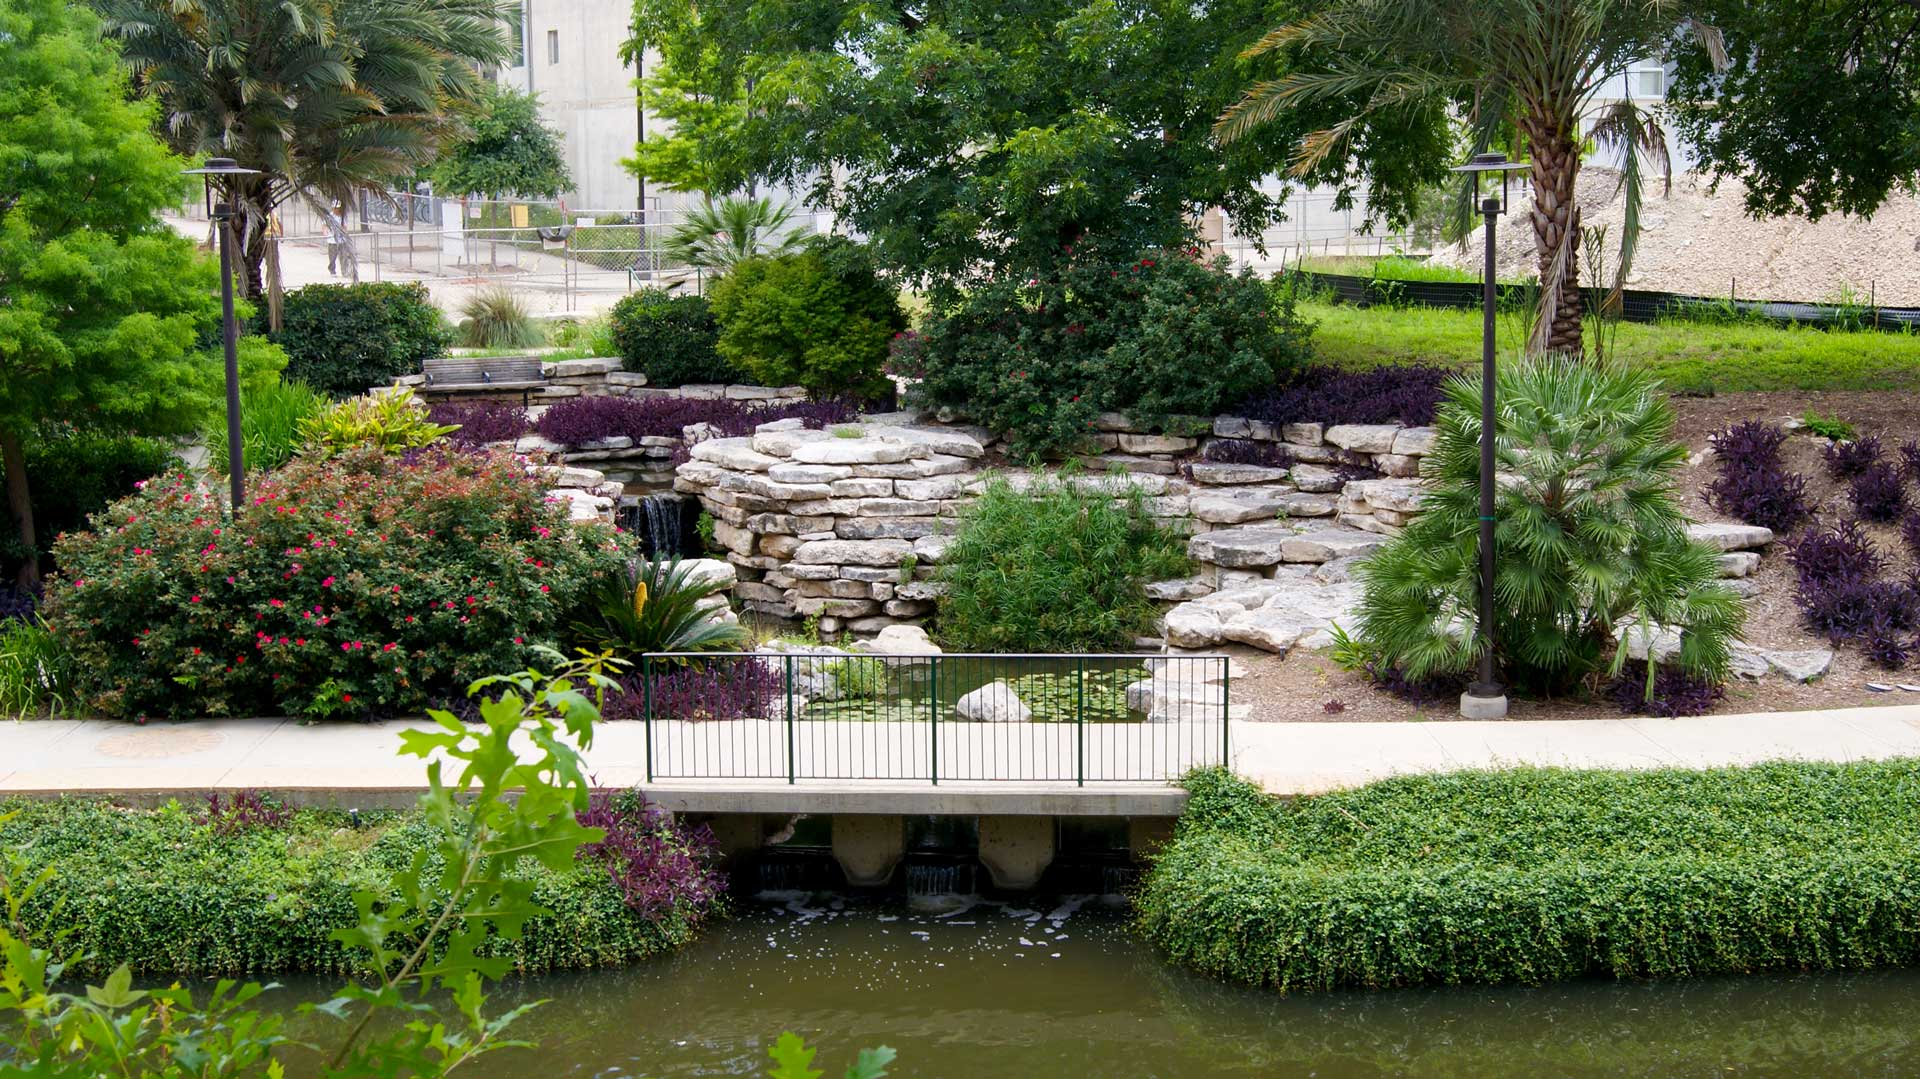 Lush Green Landscaping at Rivera Apartments in San Antonio, Texas